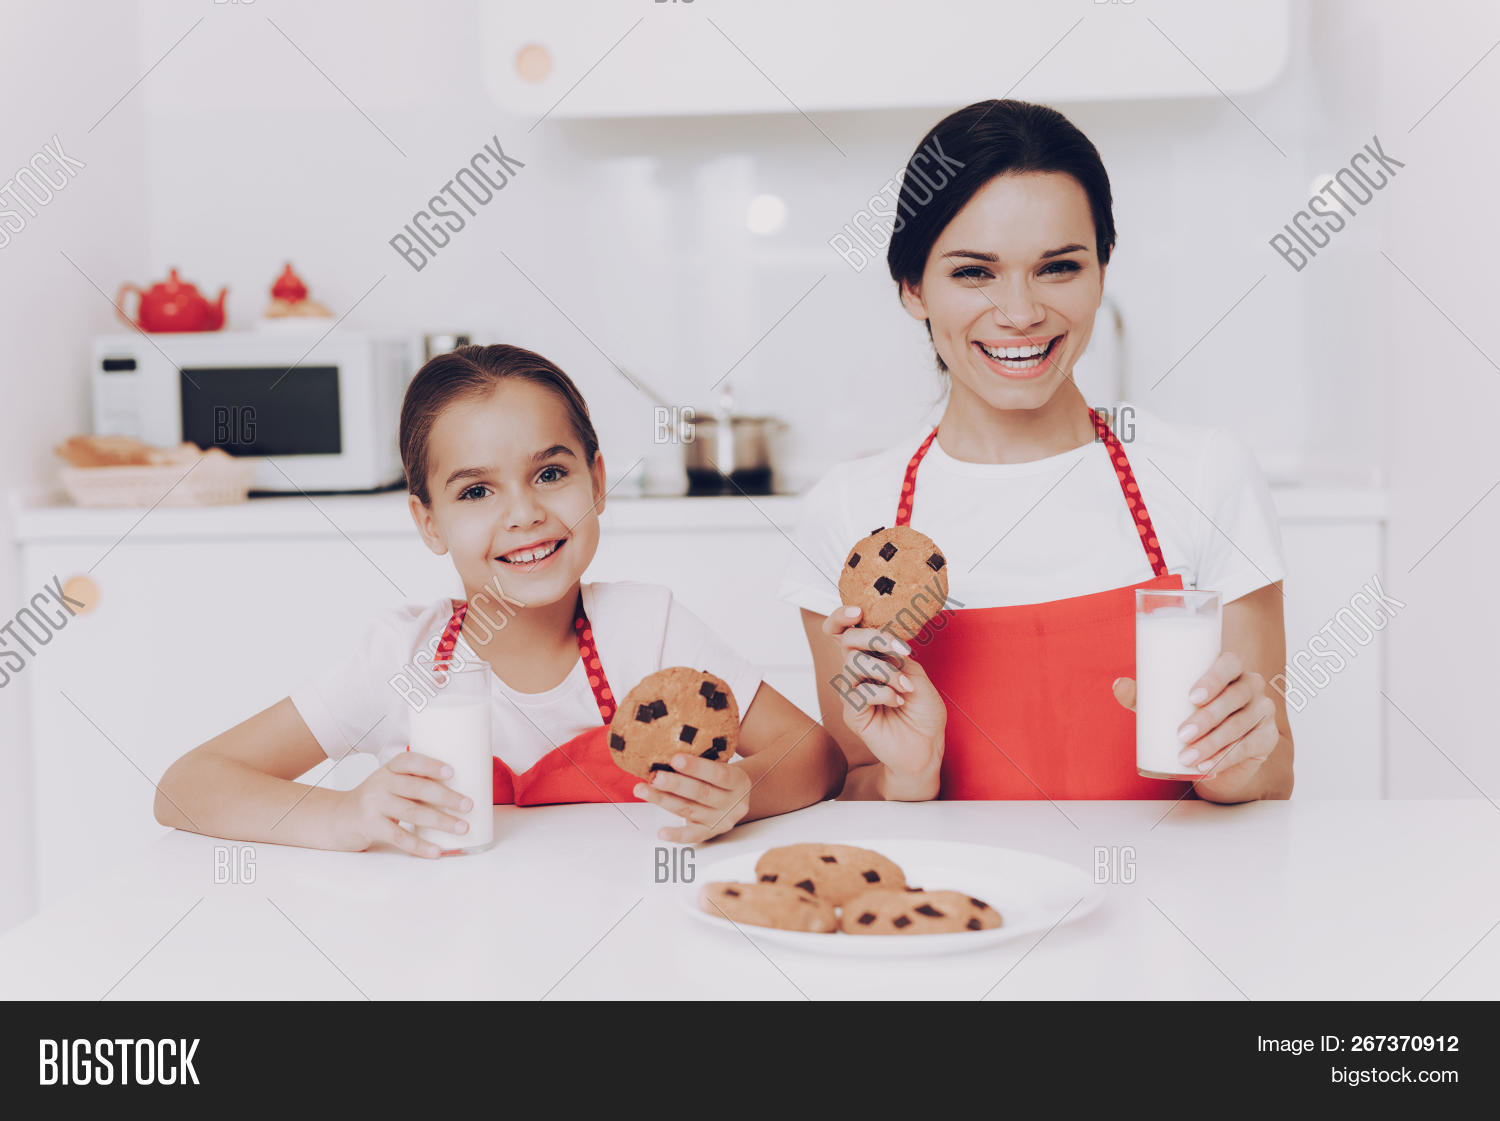 Daughter Mom Cook Image & Photo (Free Trial) | Bigstock